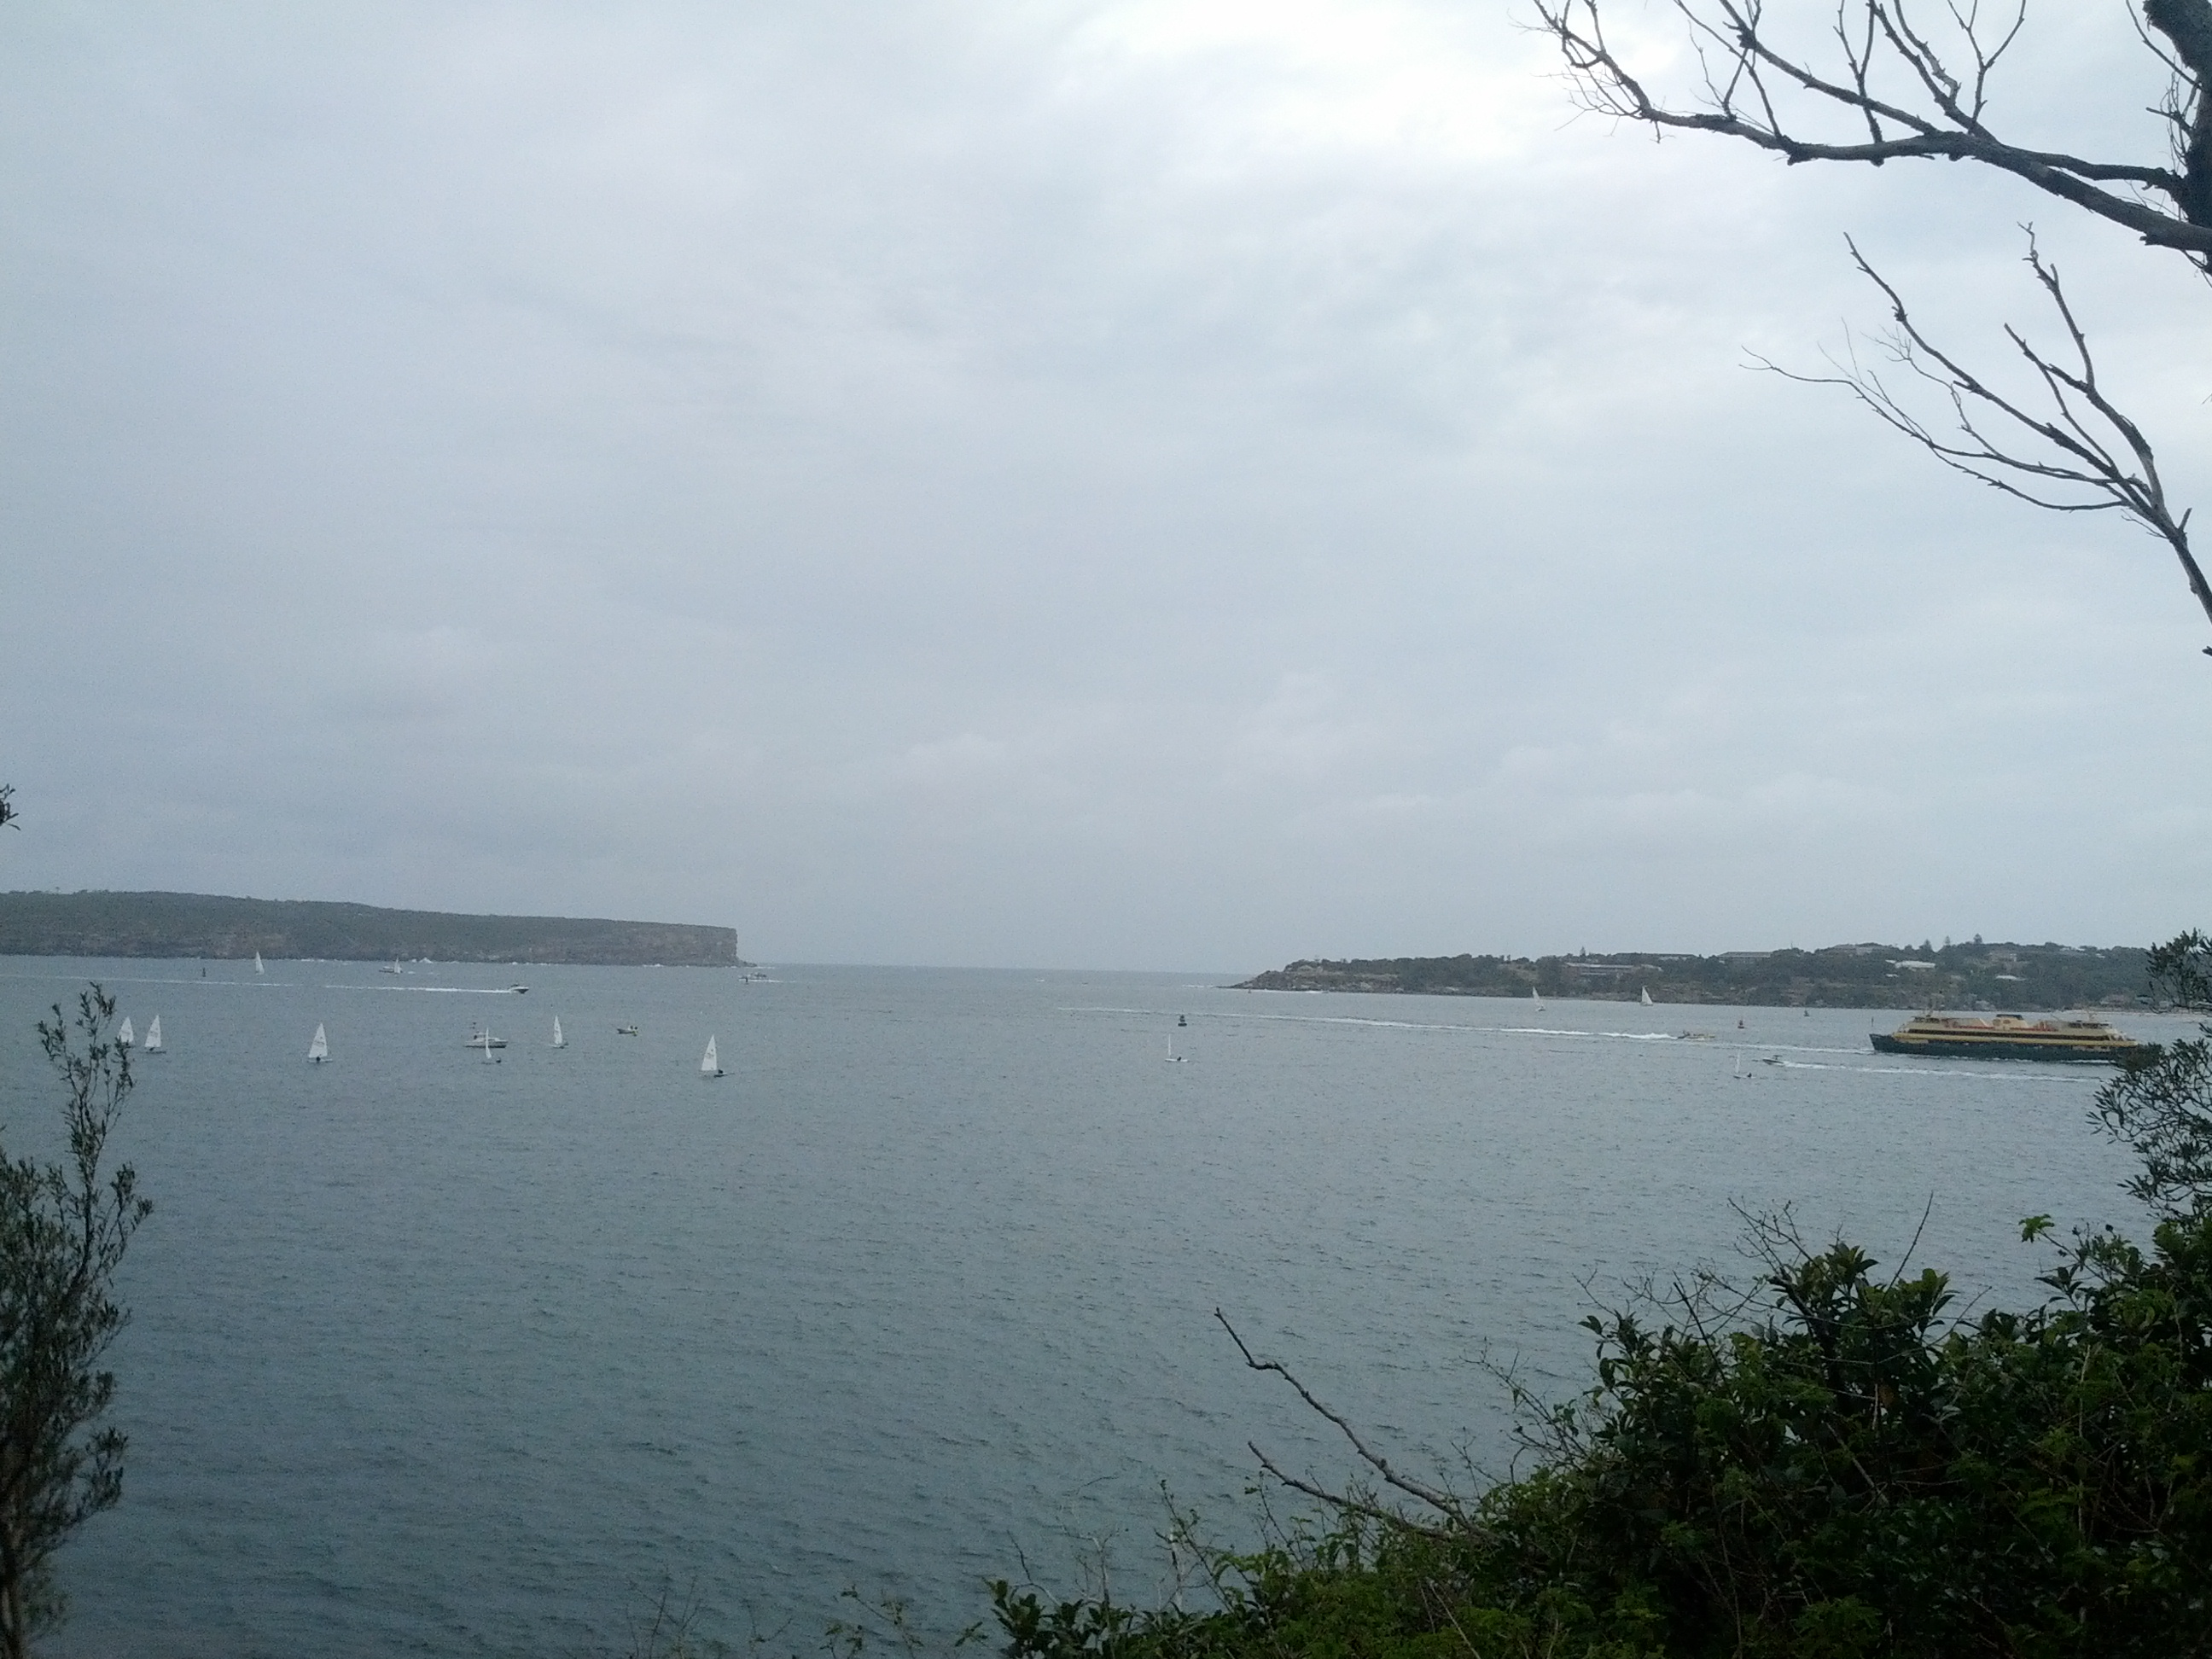 View out from Middle Head towards Sydney Heads, the entrance to Sydney Harbour.